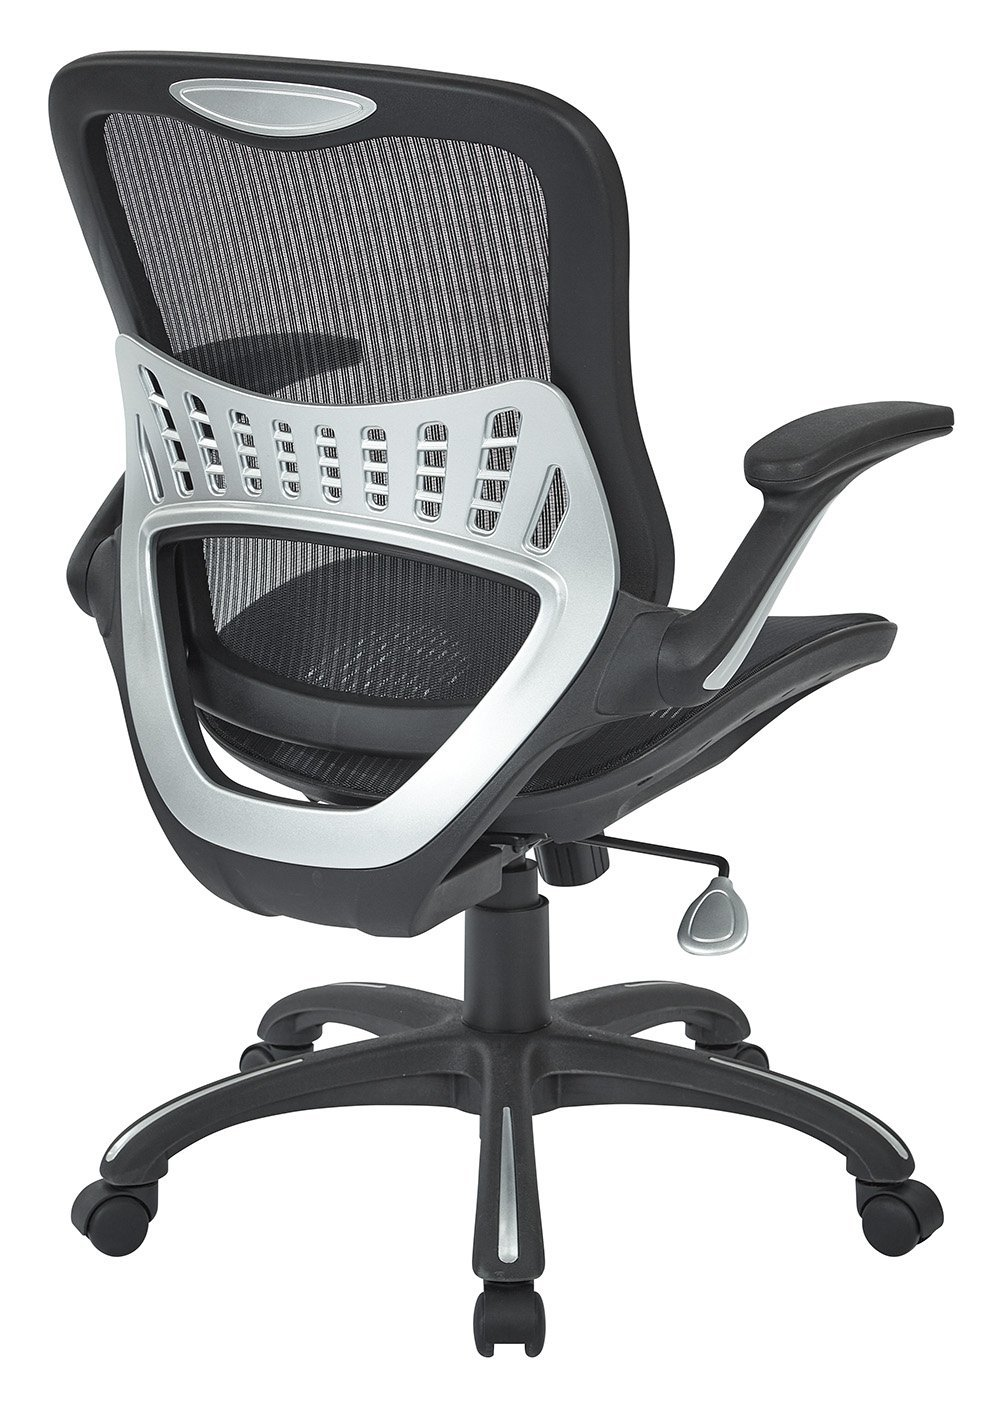 seat office to best mesh ergonomicofficechair ergonomic in chairs the buy chair